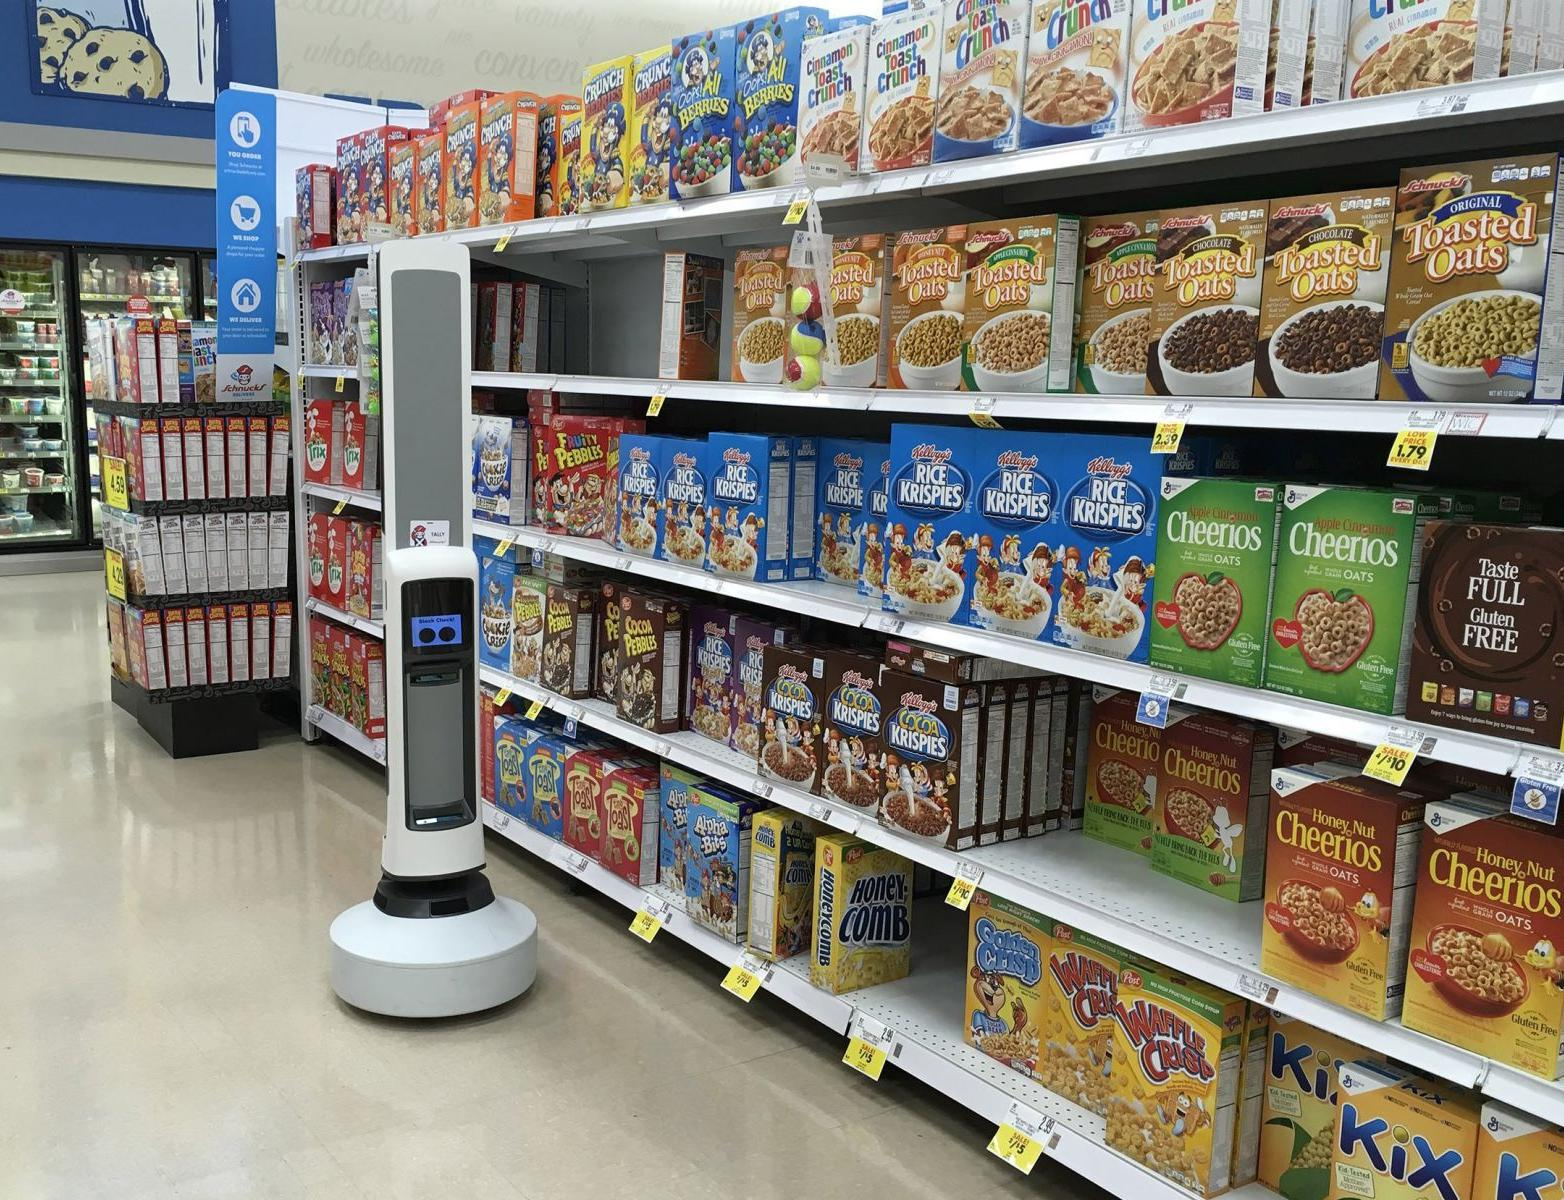 Robot Workers Will Soon Be Roaming The Aisles At Schnucks